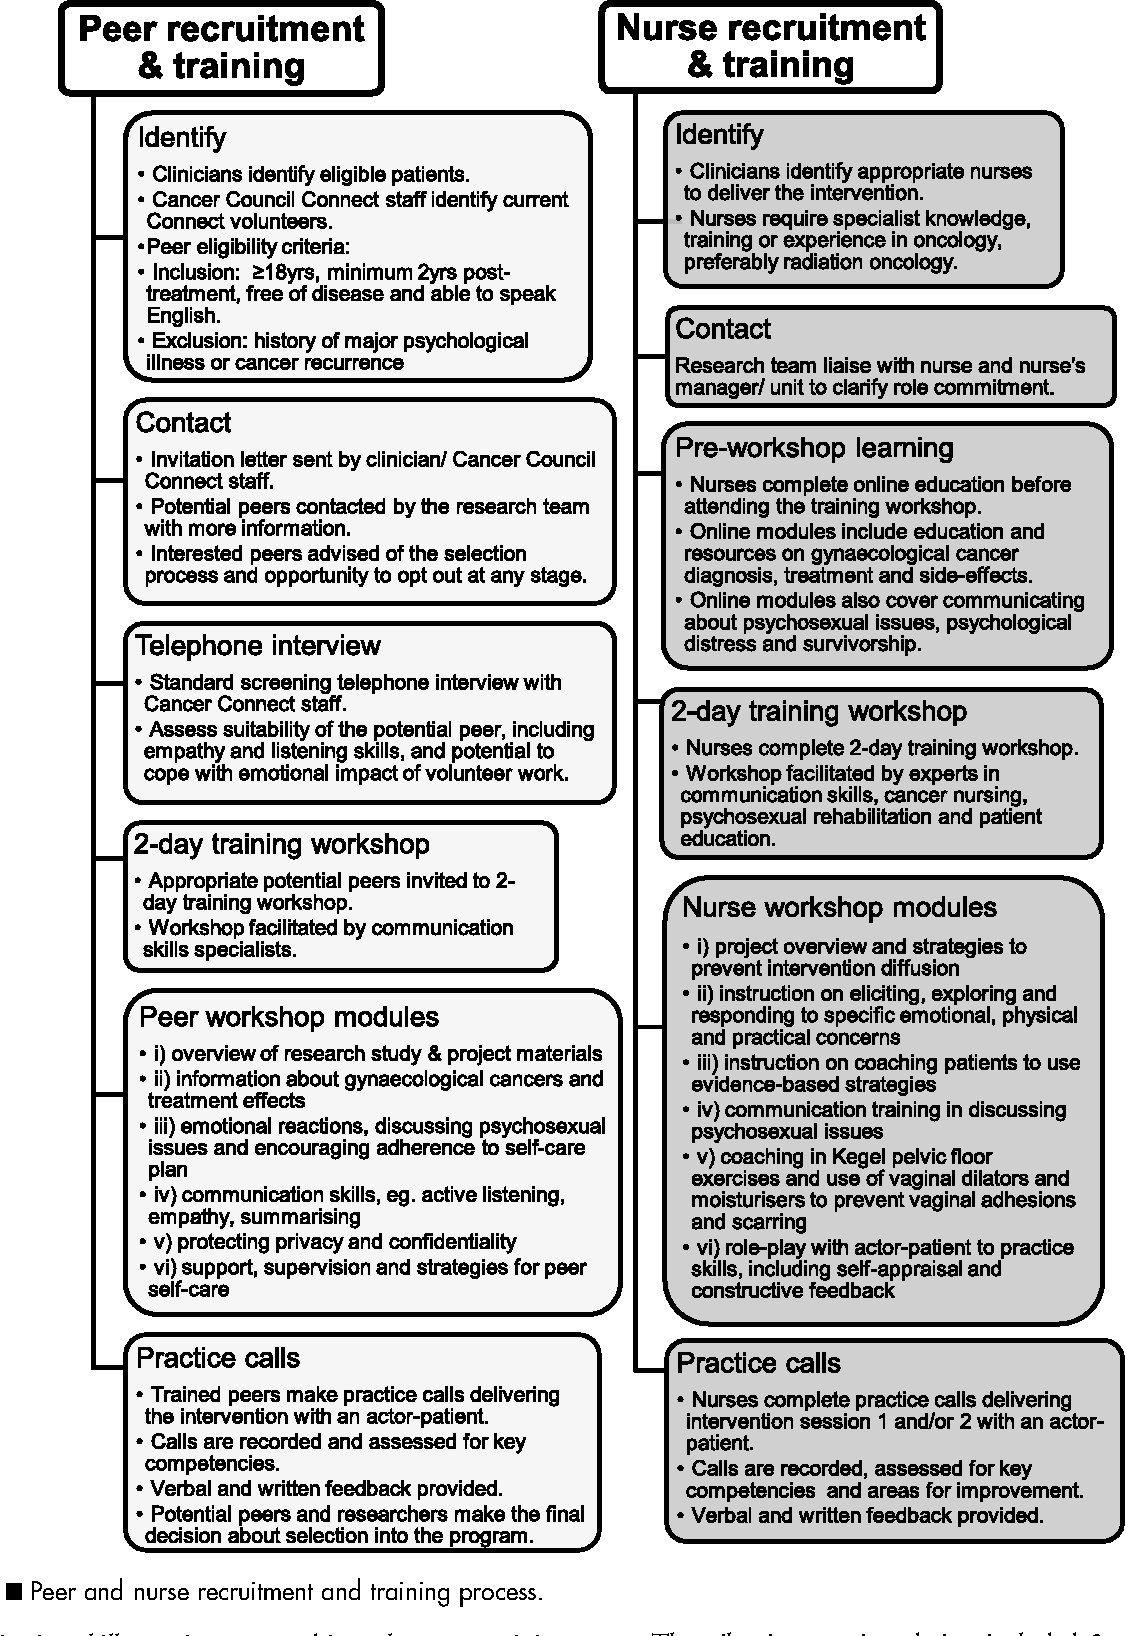 Figure 3 from Developing an Evidence-Based, Nurse-Led